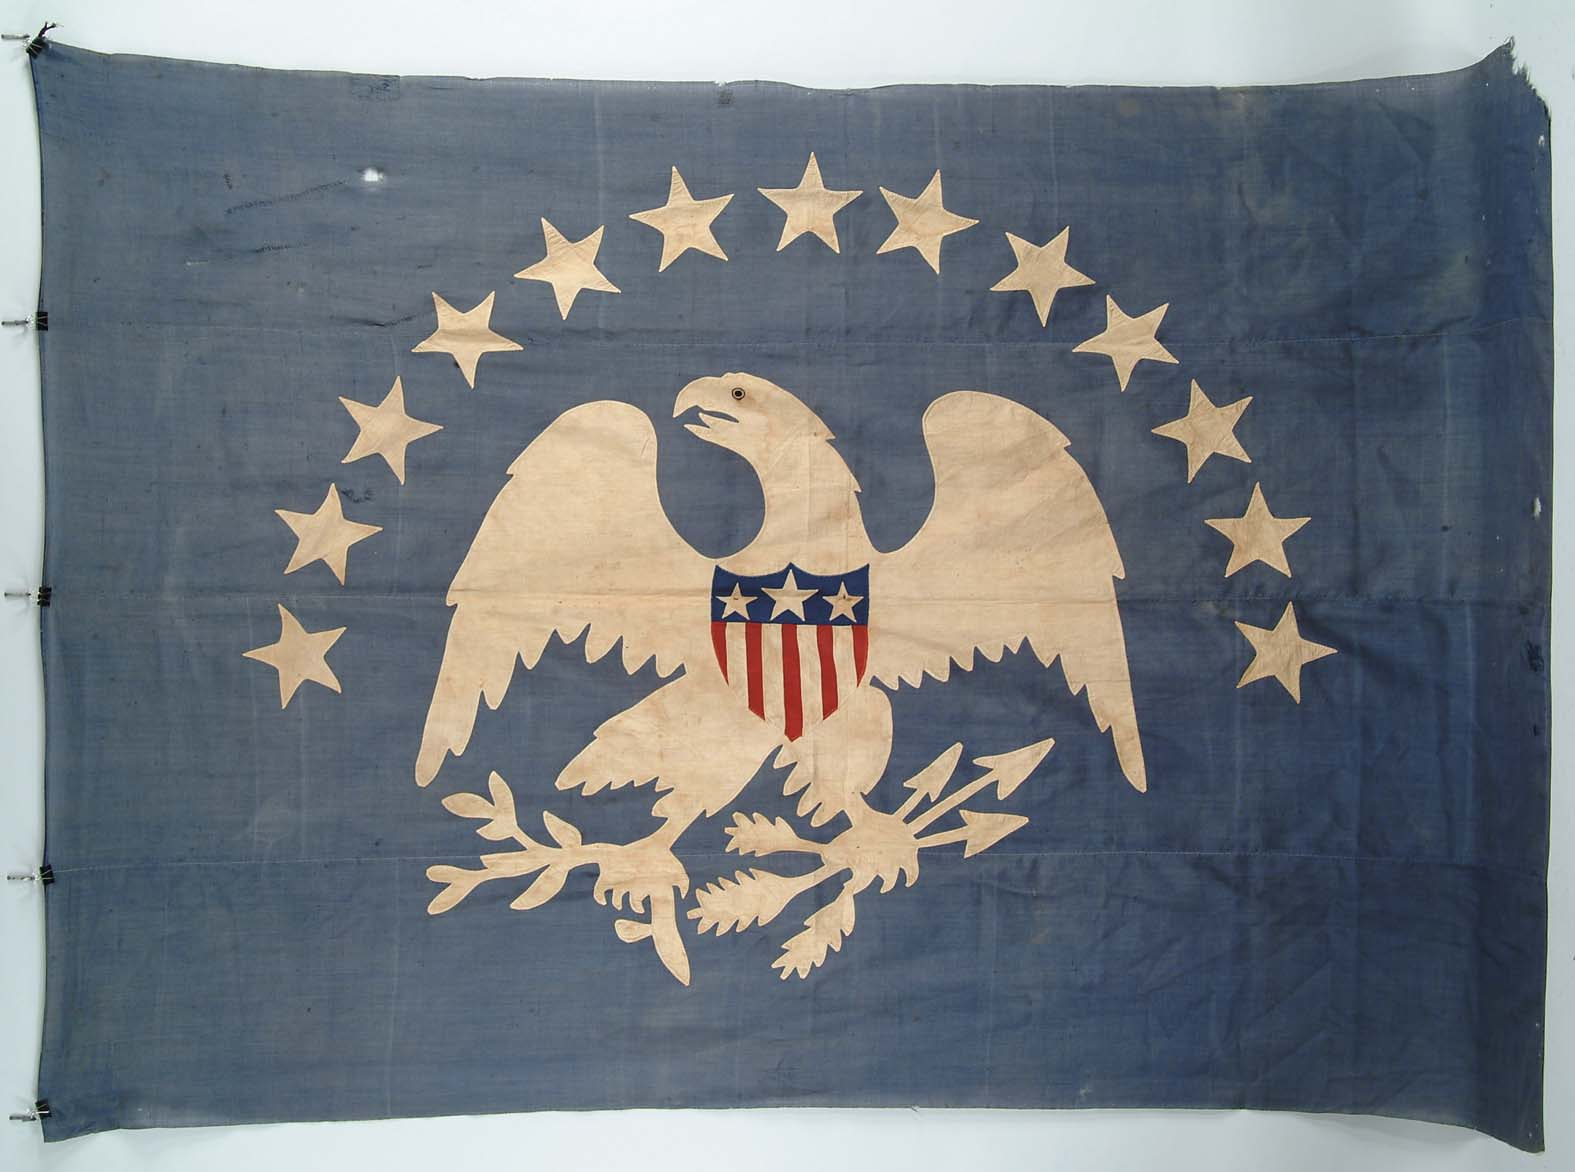 Early 19th century flag